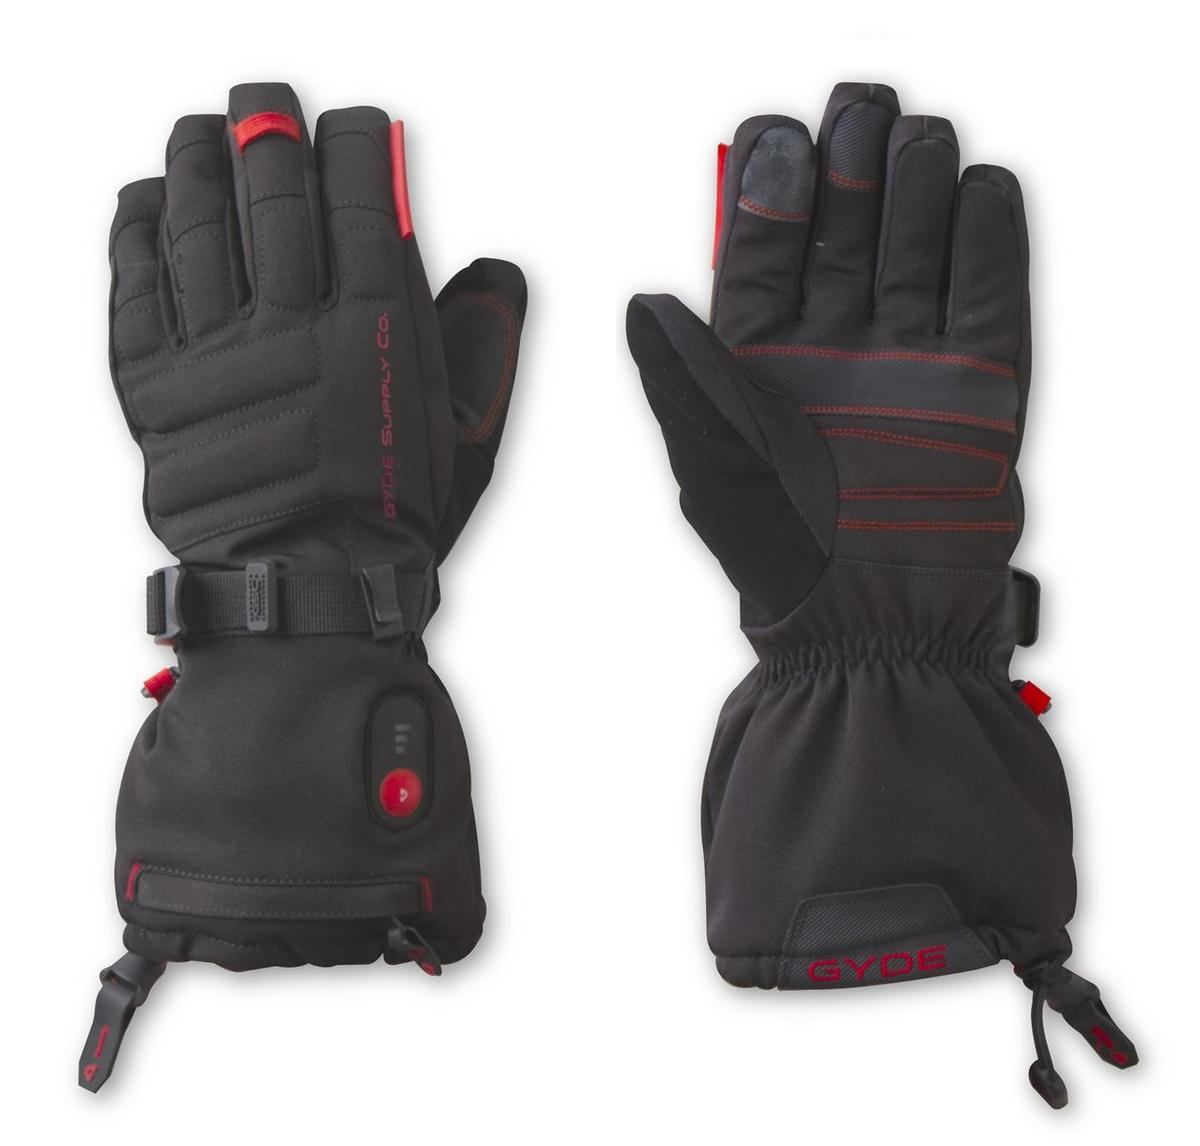 Gerbing Gyde S4 Heated Gloves Black 7v Battery The Warming Store